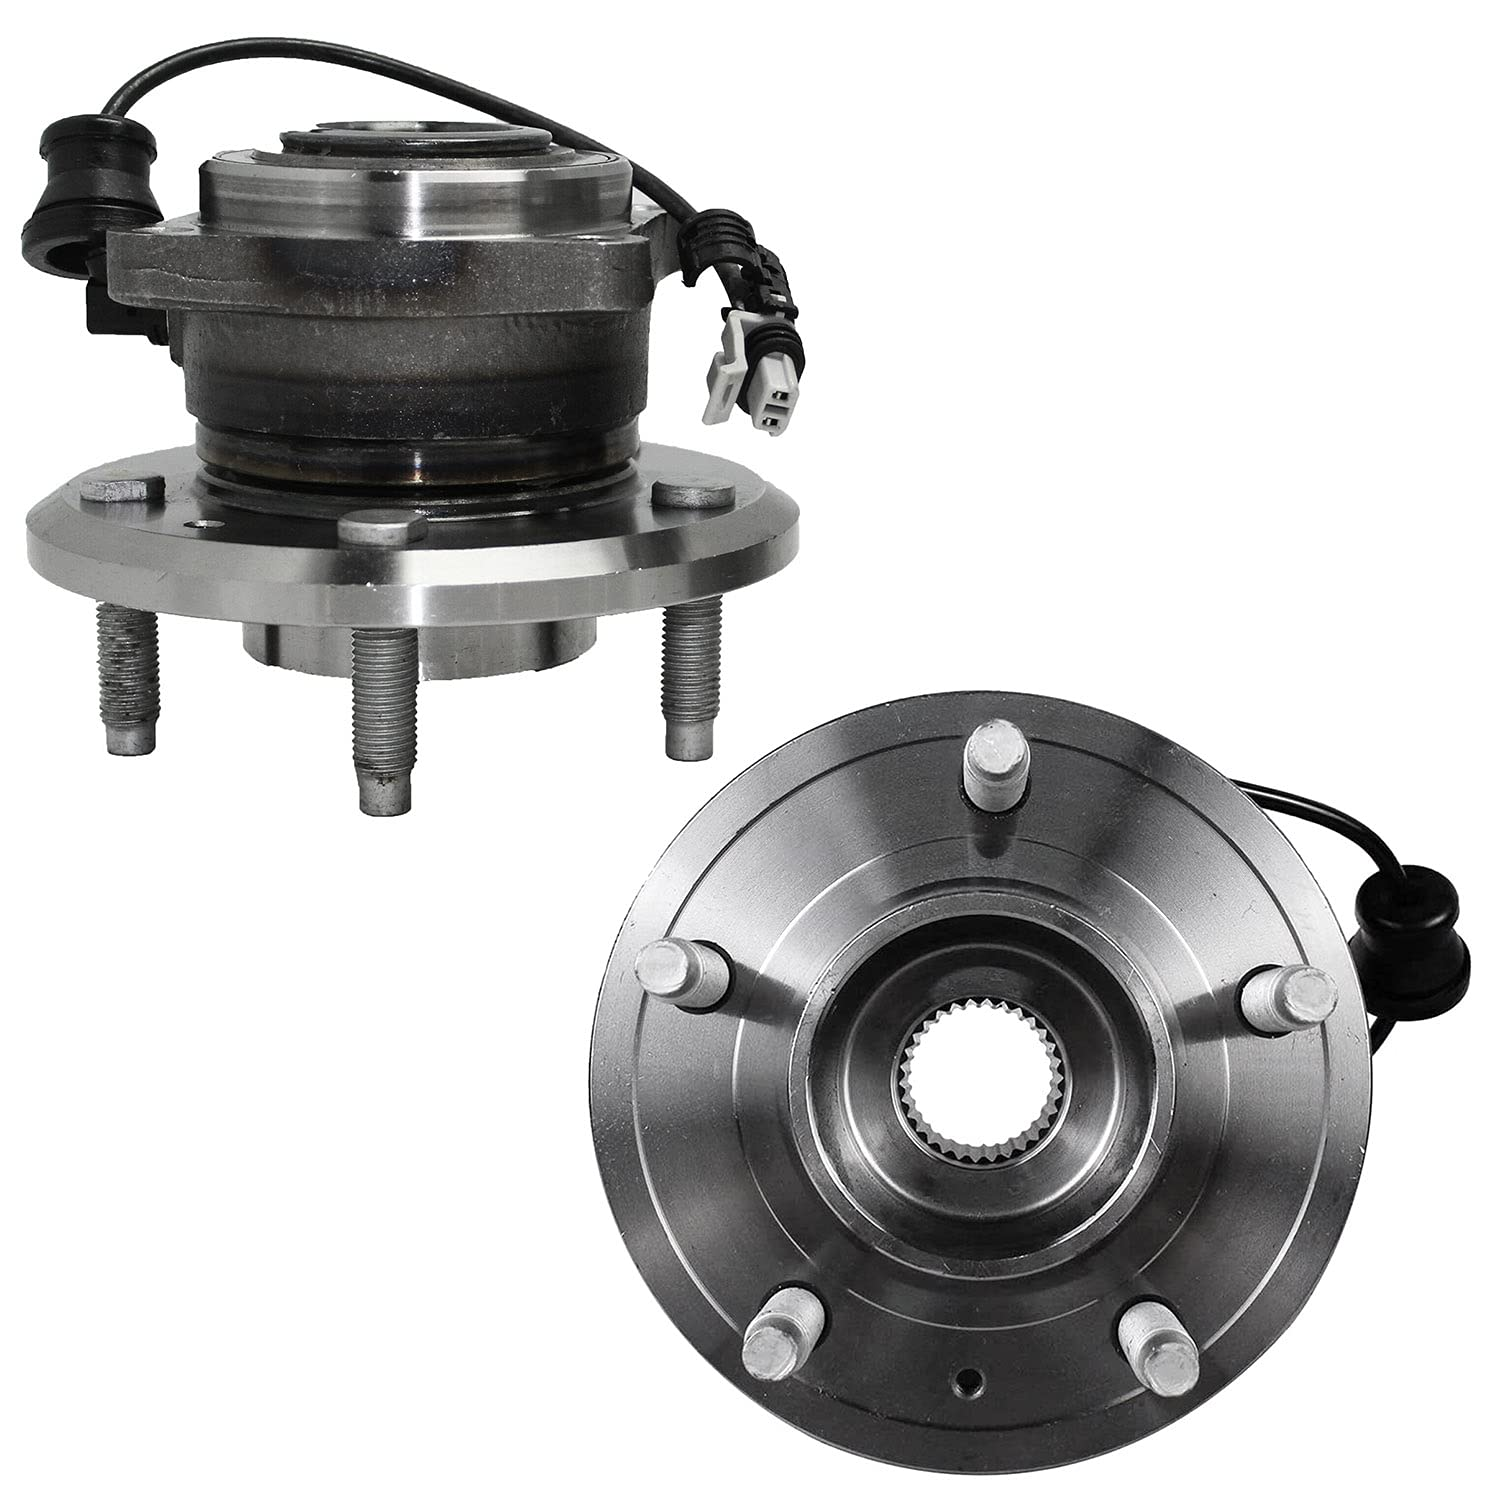 Detroit Axle 512358- Tucson Mall Fashionable Rear Wheel Hub C for Bearing Chevy Assembly